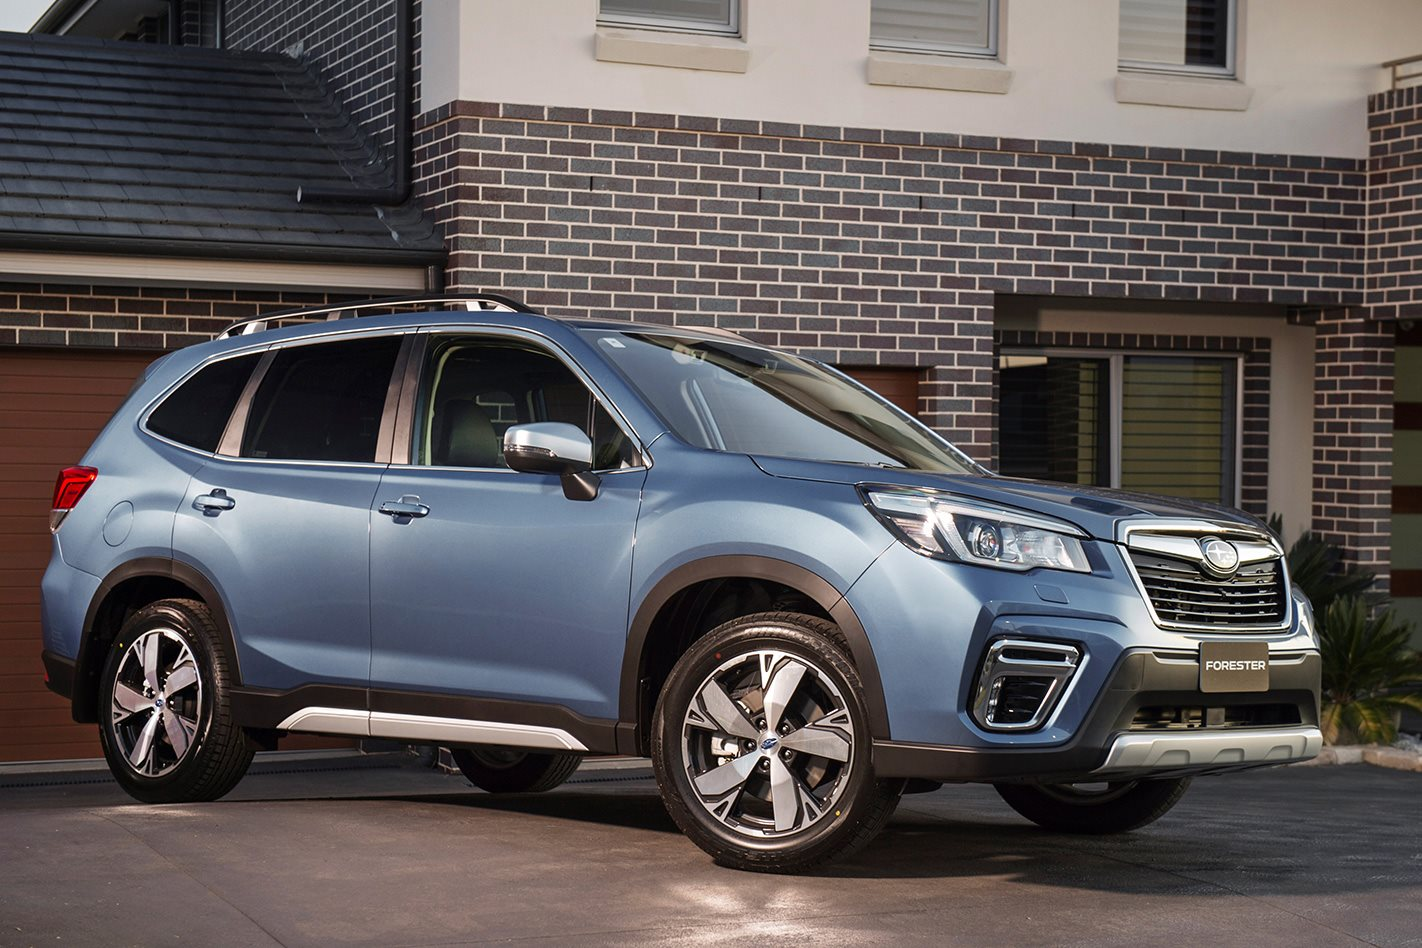 2019 Subaru Forester Pricing And Features